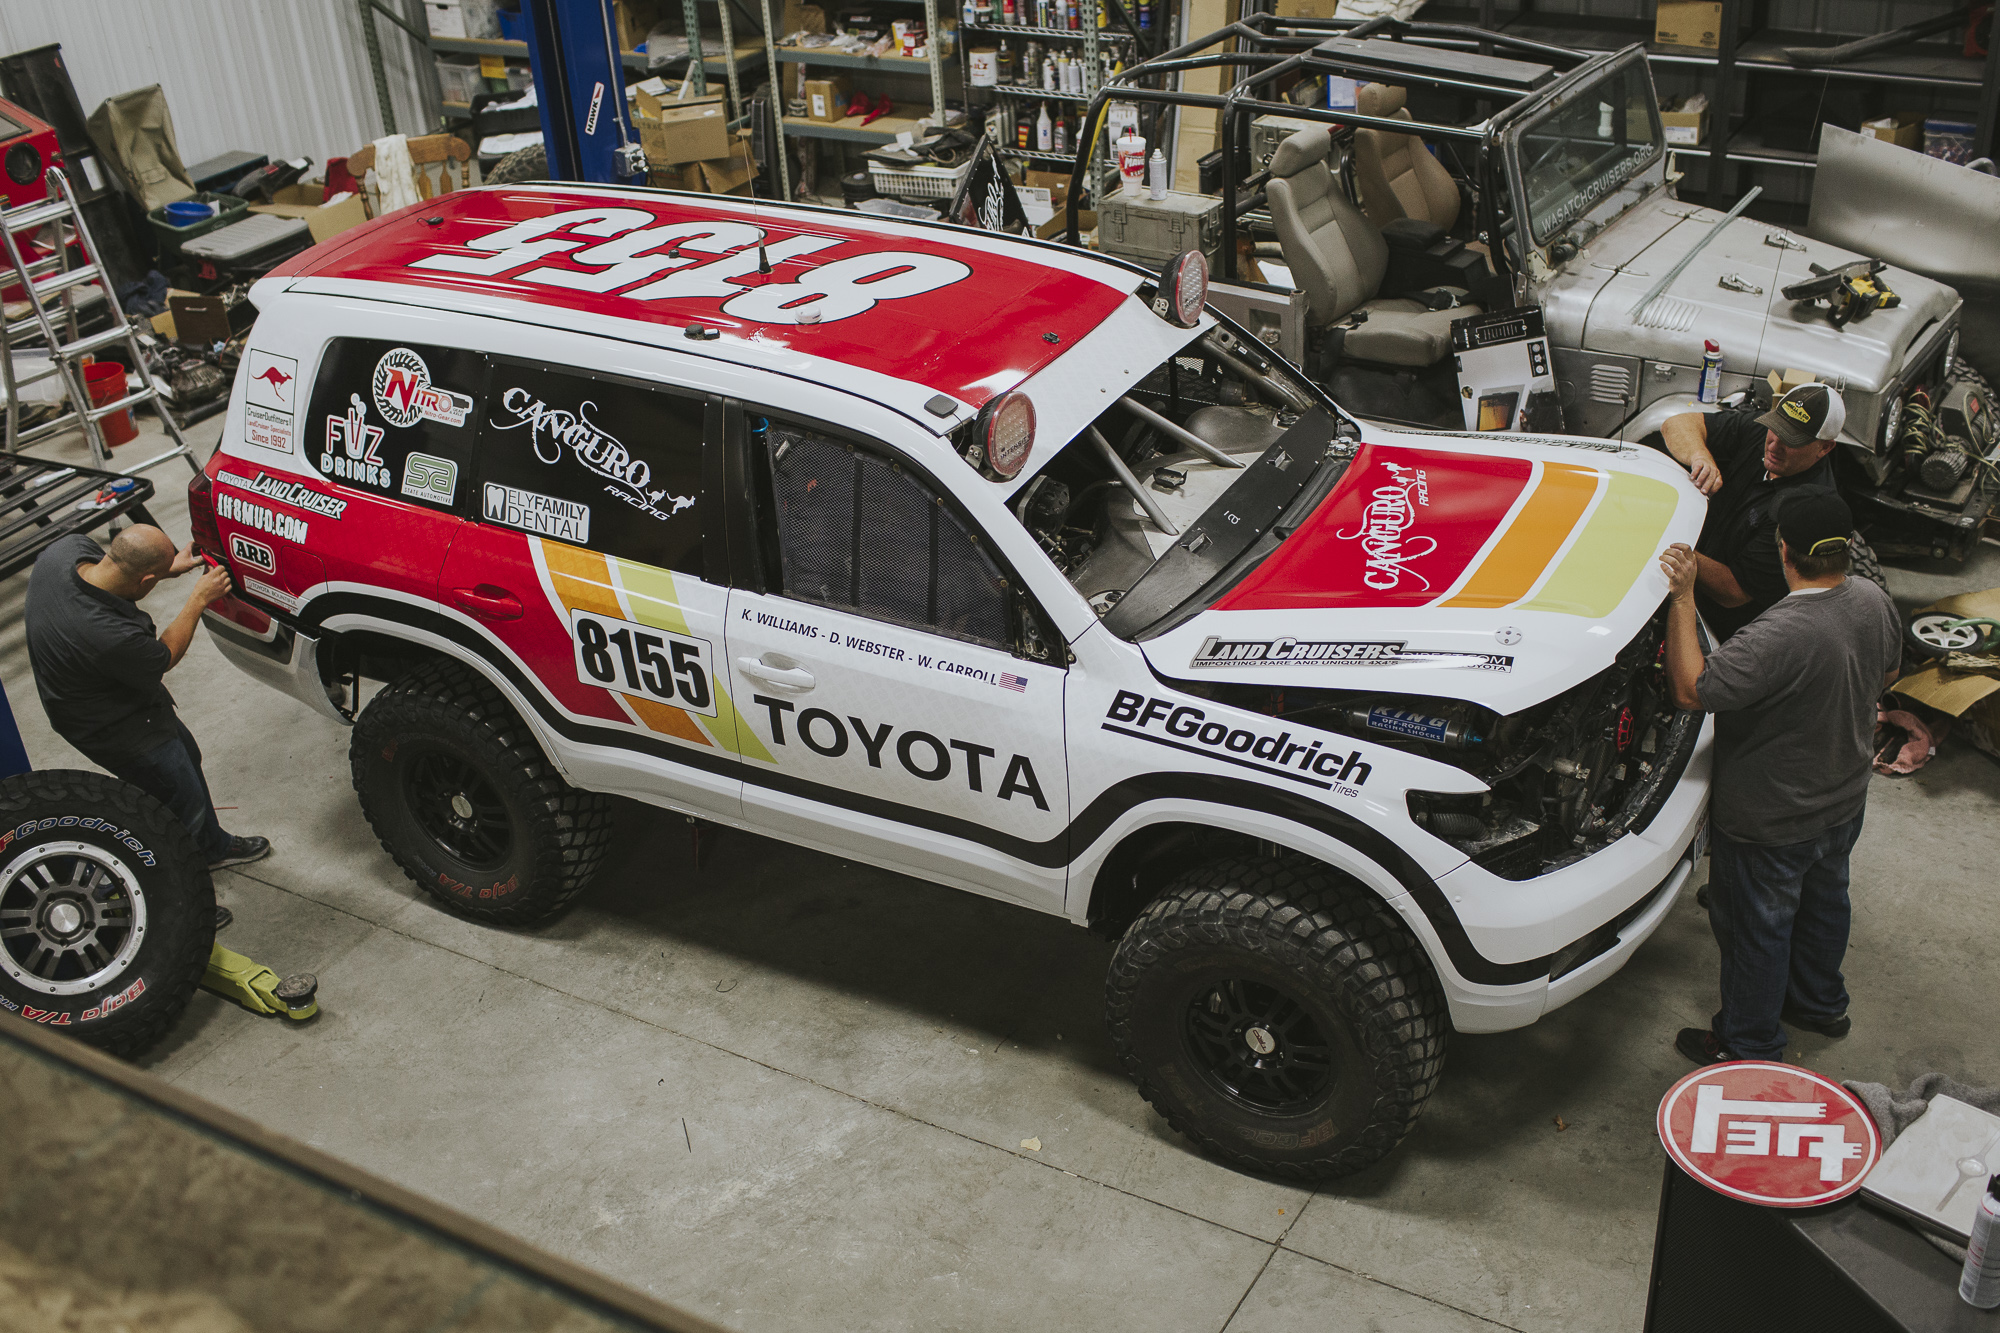 Canguro Racing Toyota Landcruiser parked in a shop